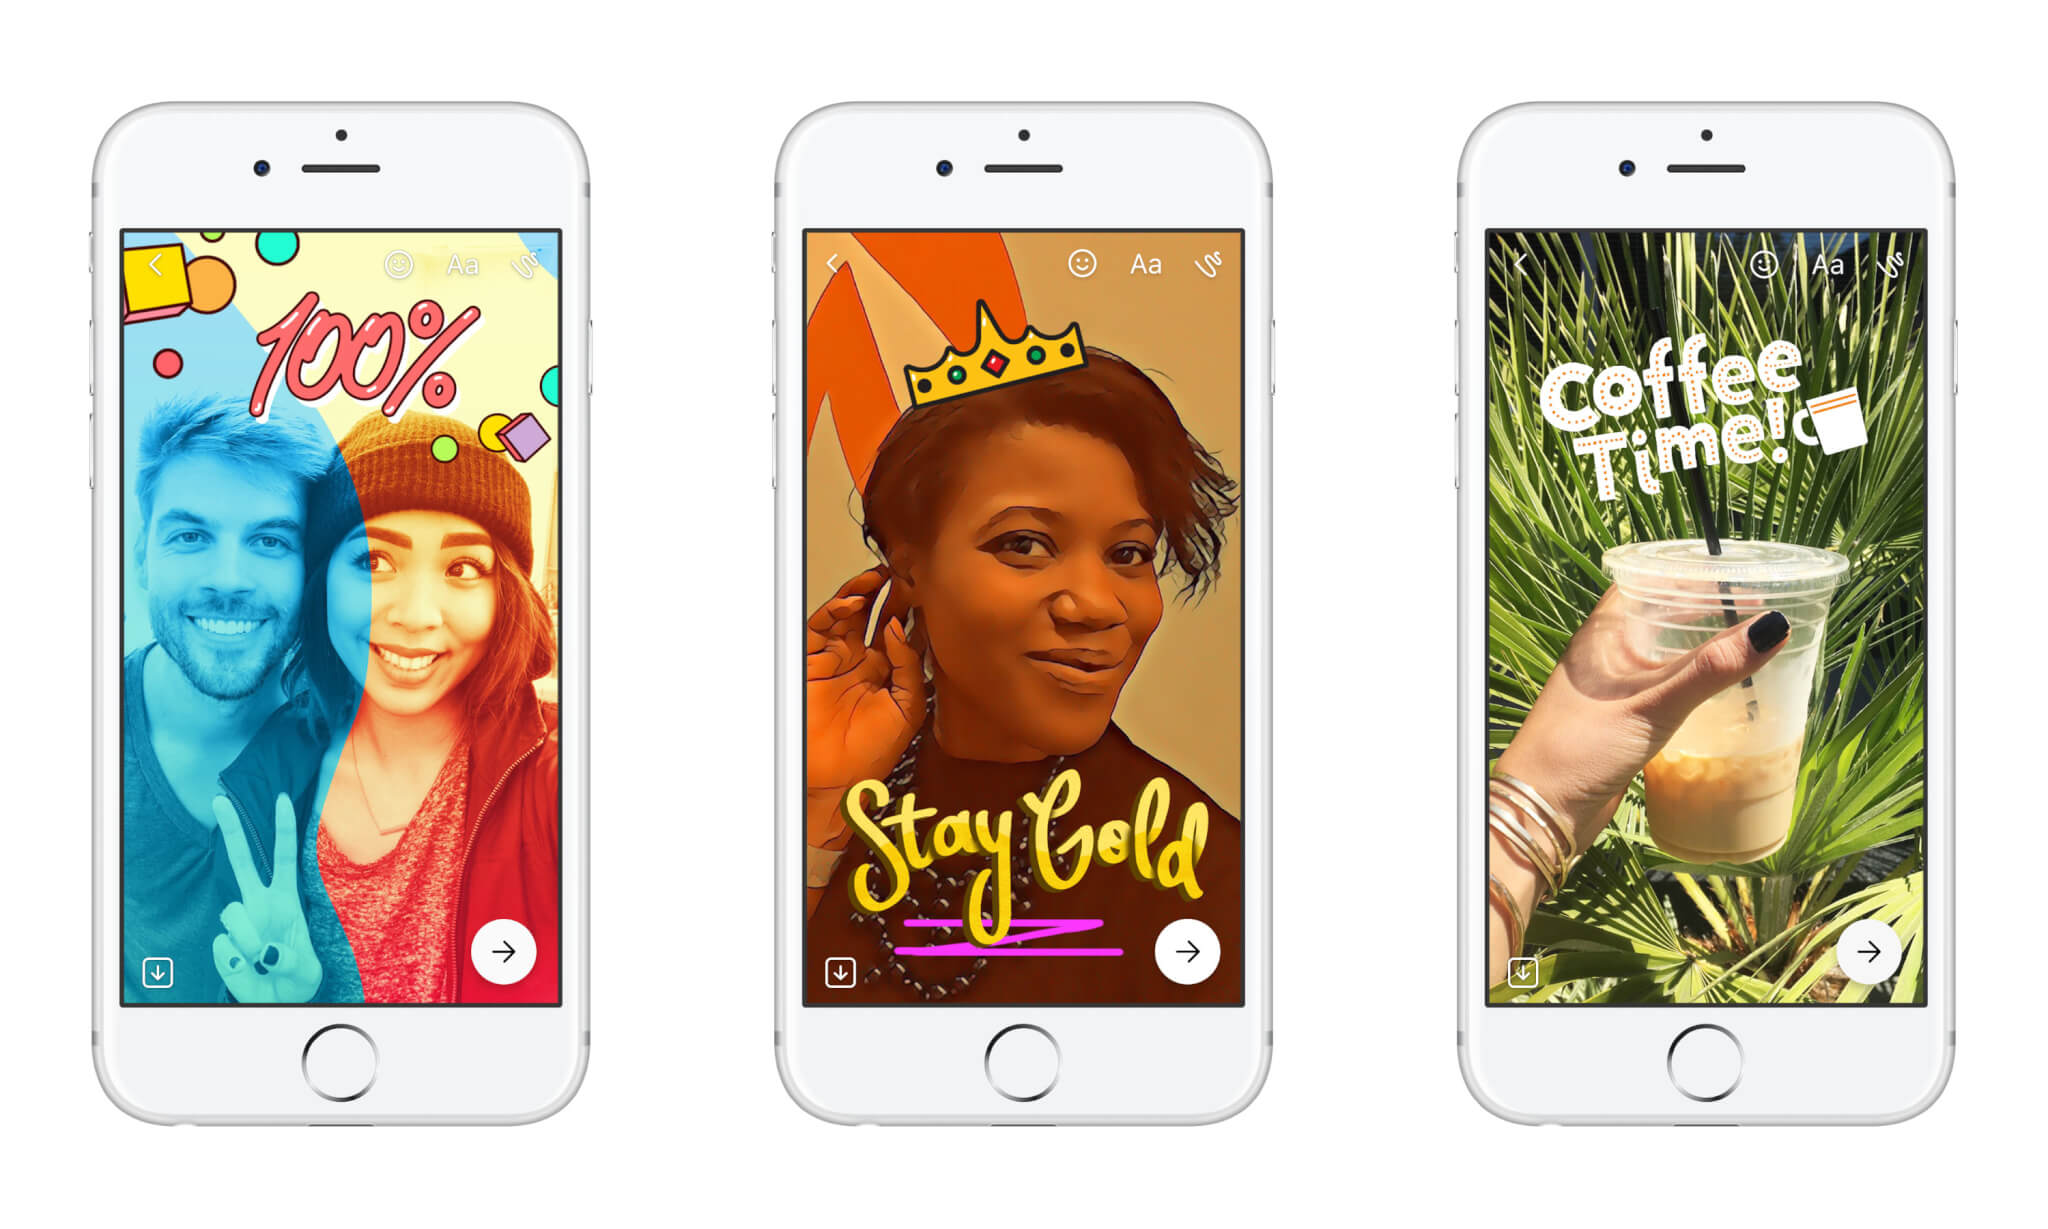 Effects, filters, and stickers are available for Messenger Day.